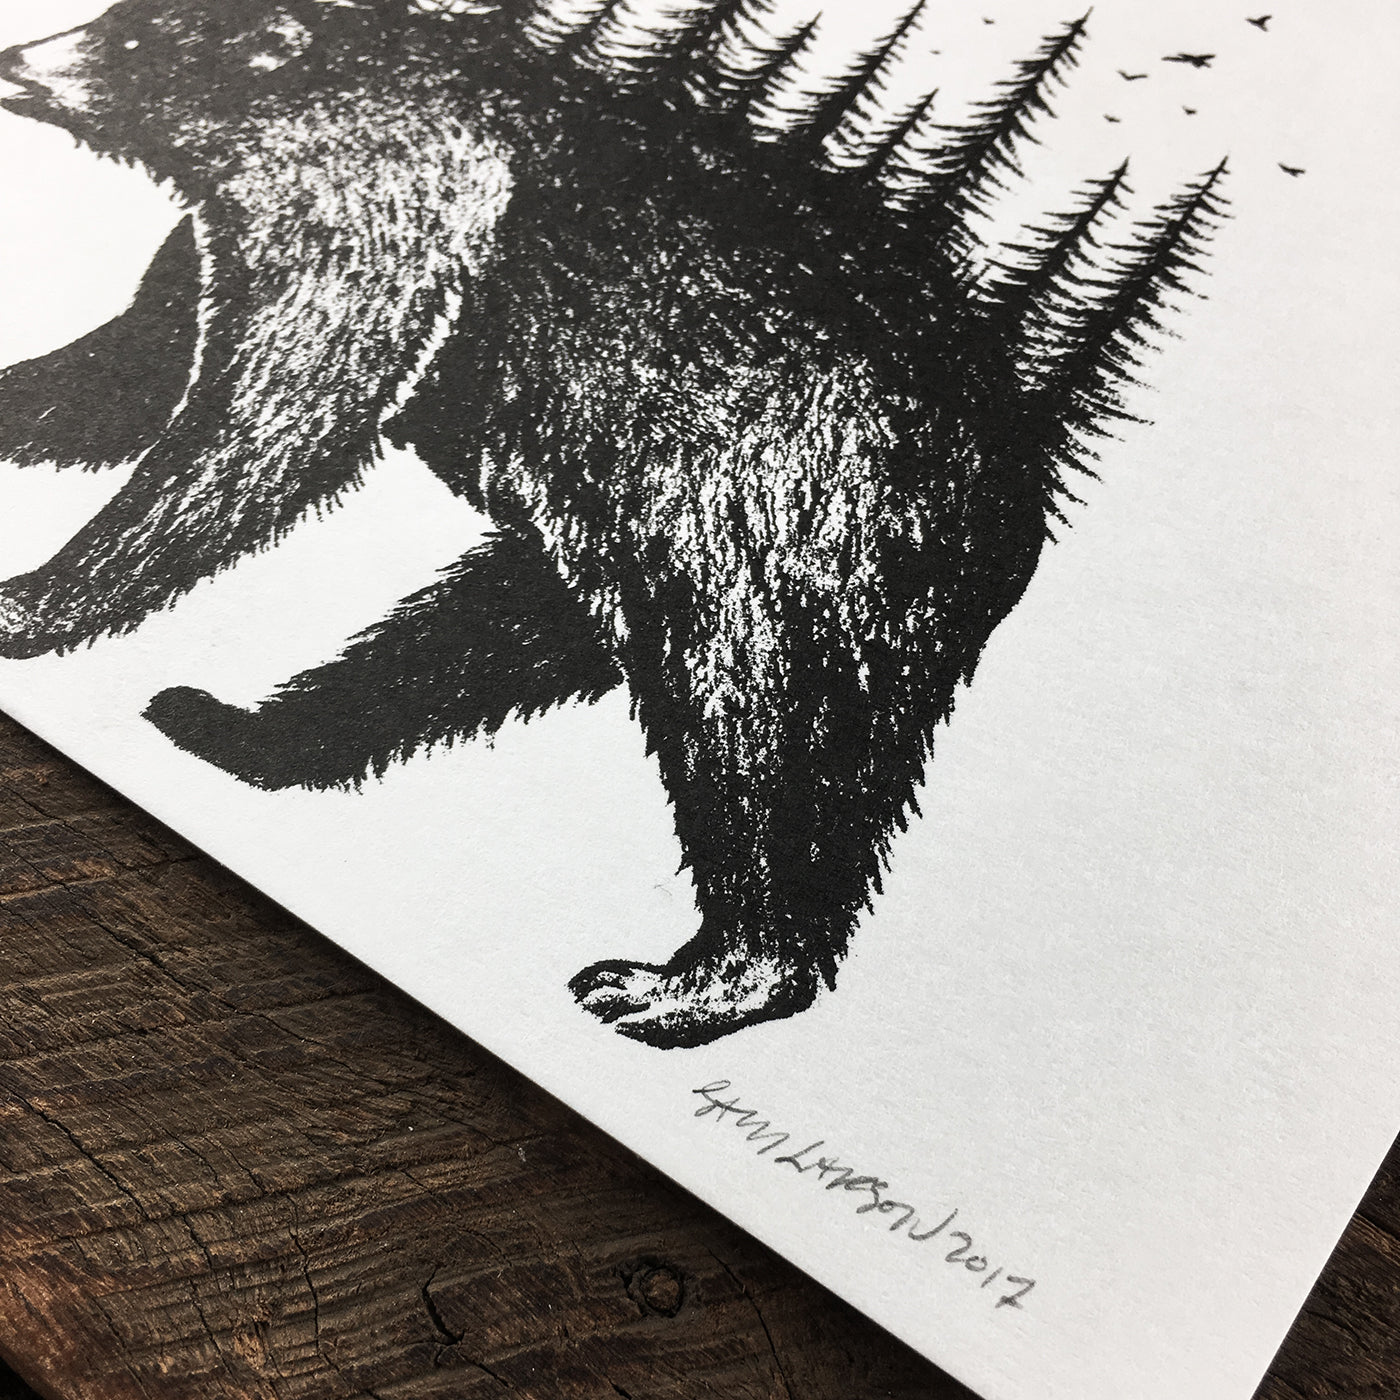 Bear Pines - Signed Print #48